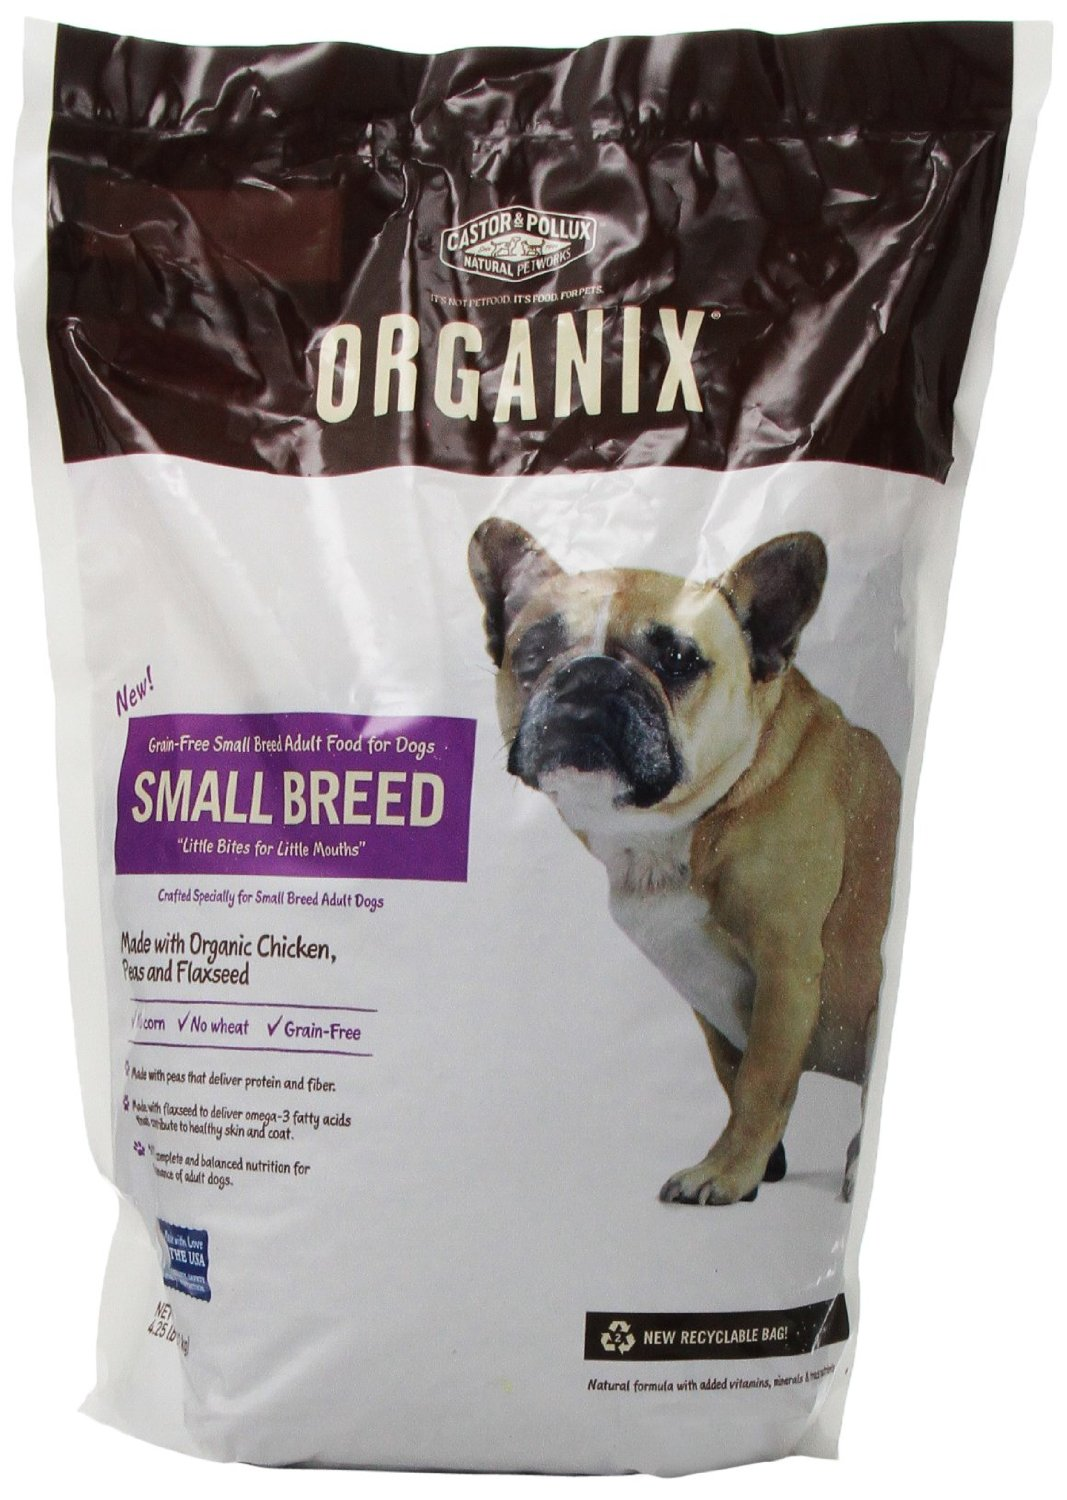 Castor & Pollux Organix Skin & Coat Dog Food